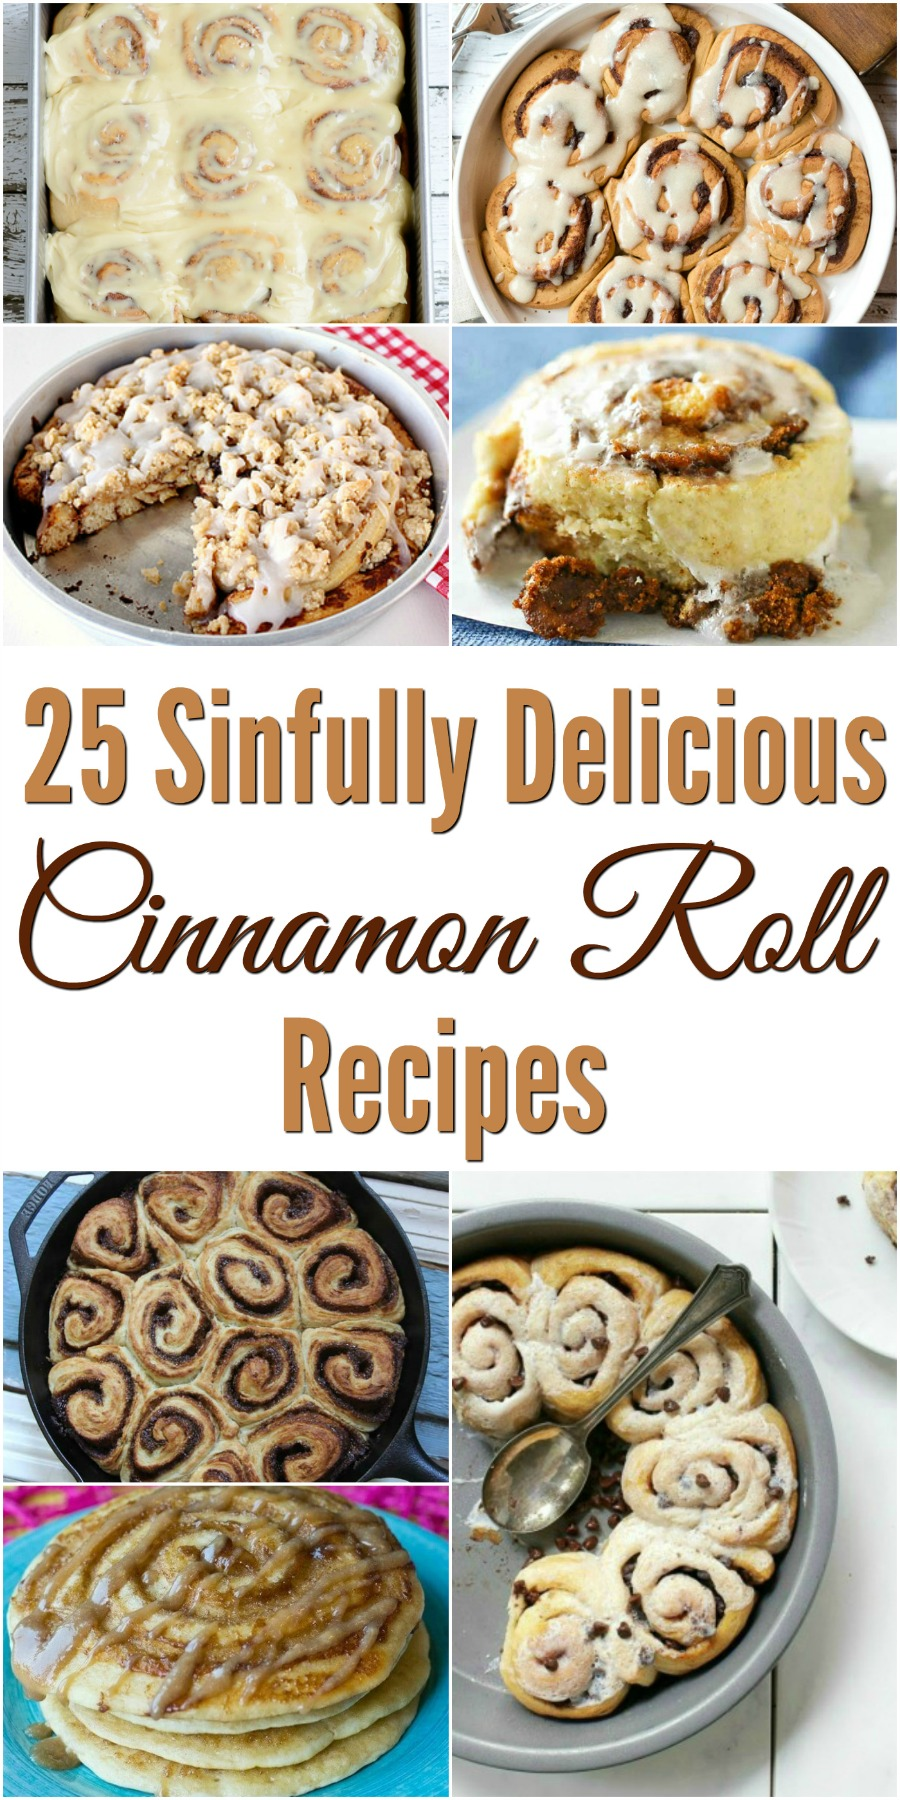 Want to make a delicious homemade breakfast for your family? Check out these 25 Delicious Cinnamon Roll Recipes here!